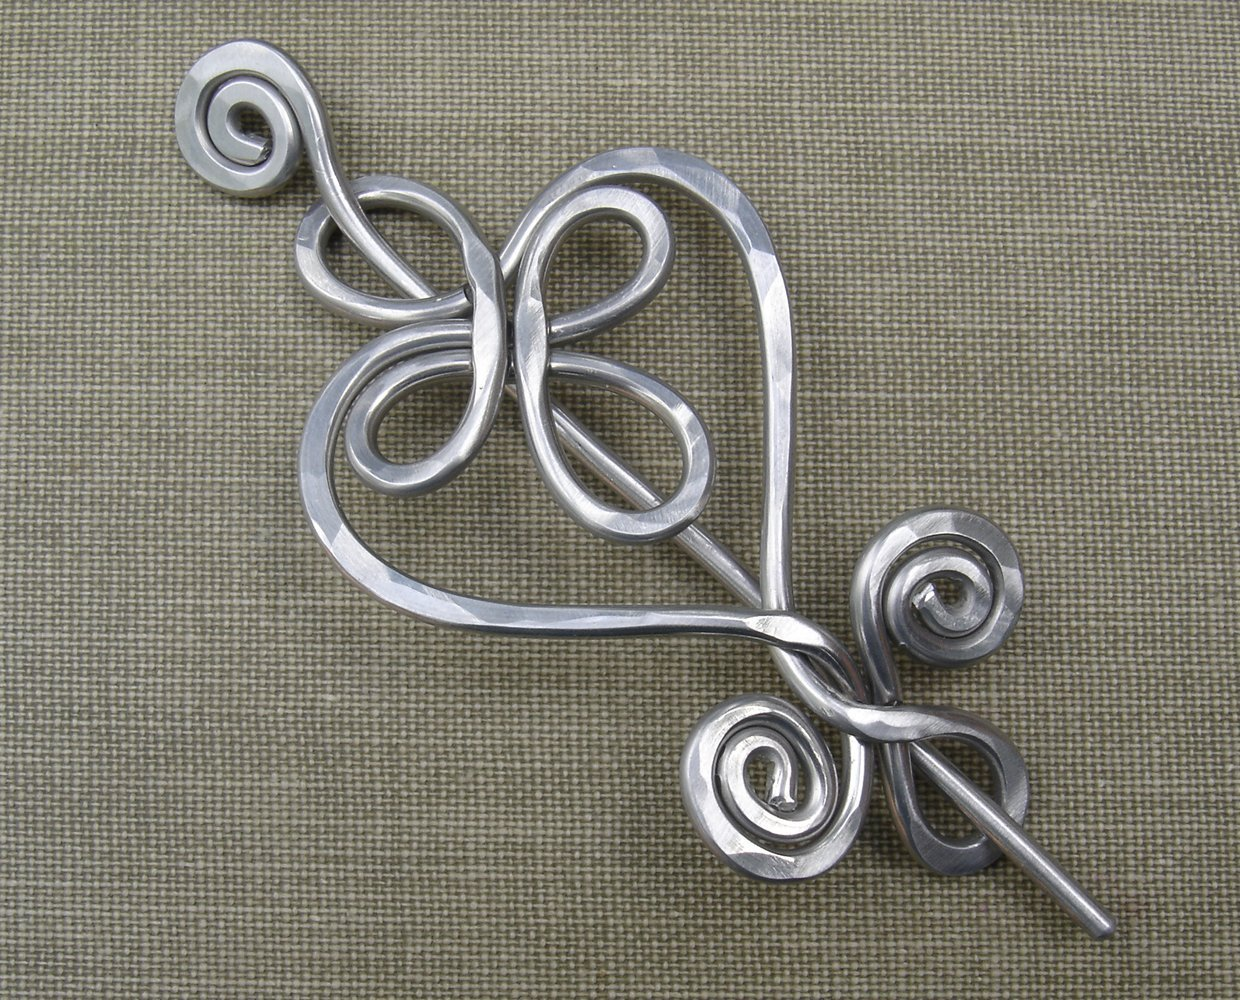 Celtic Heart Aluminum Shawl Pin, Sweater Brooch, Scarf Pin, Knitter Gift Handmade